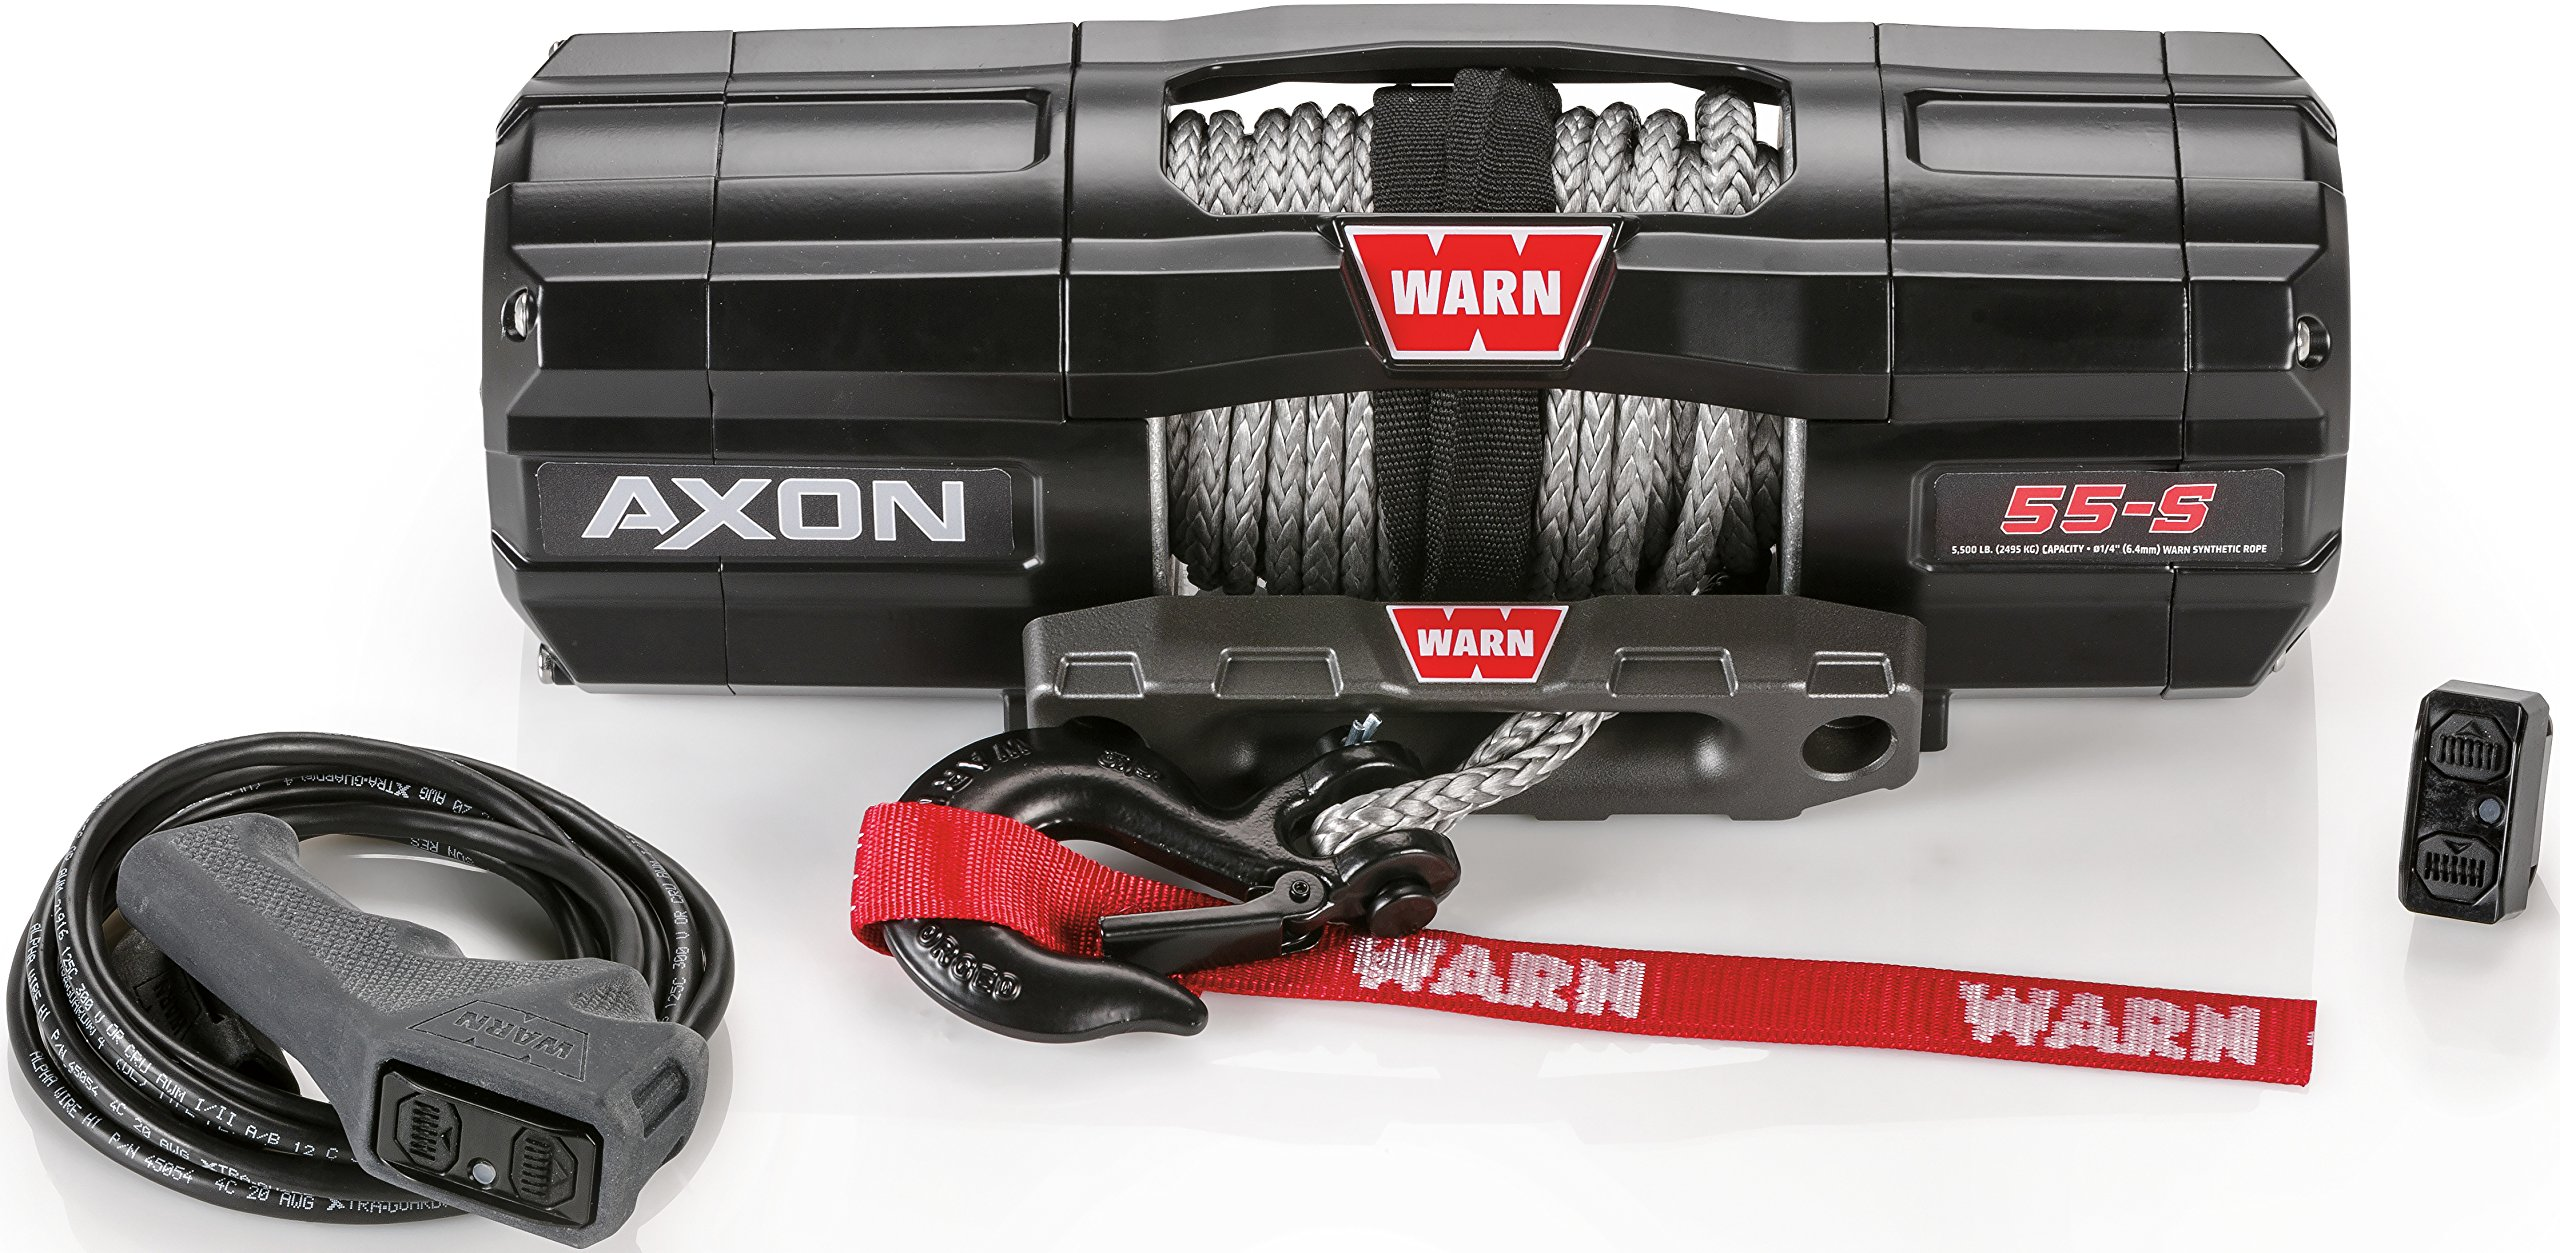 WARN 101150 AXON 55-S Powersports Winch With Spydura Synthetic Rope by WARN